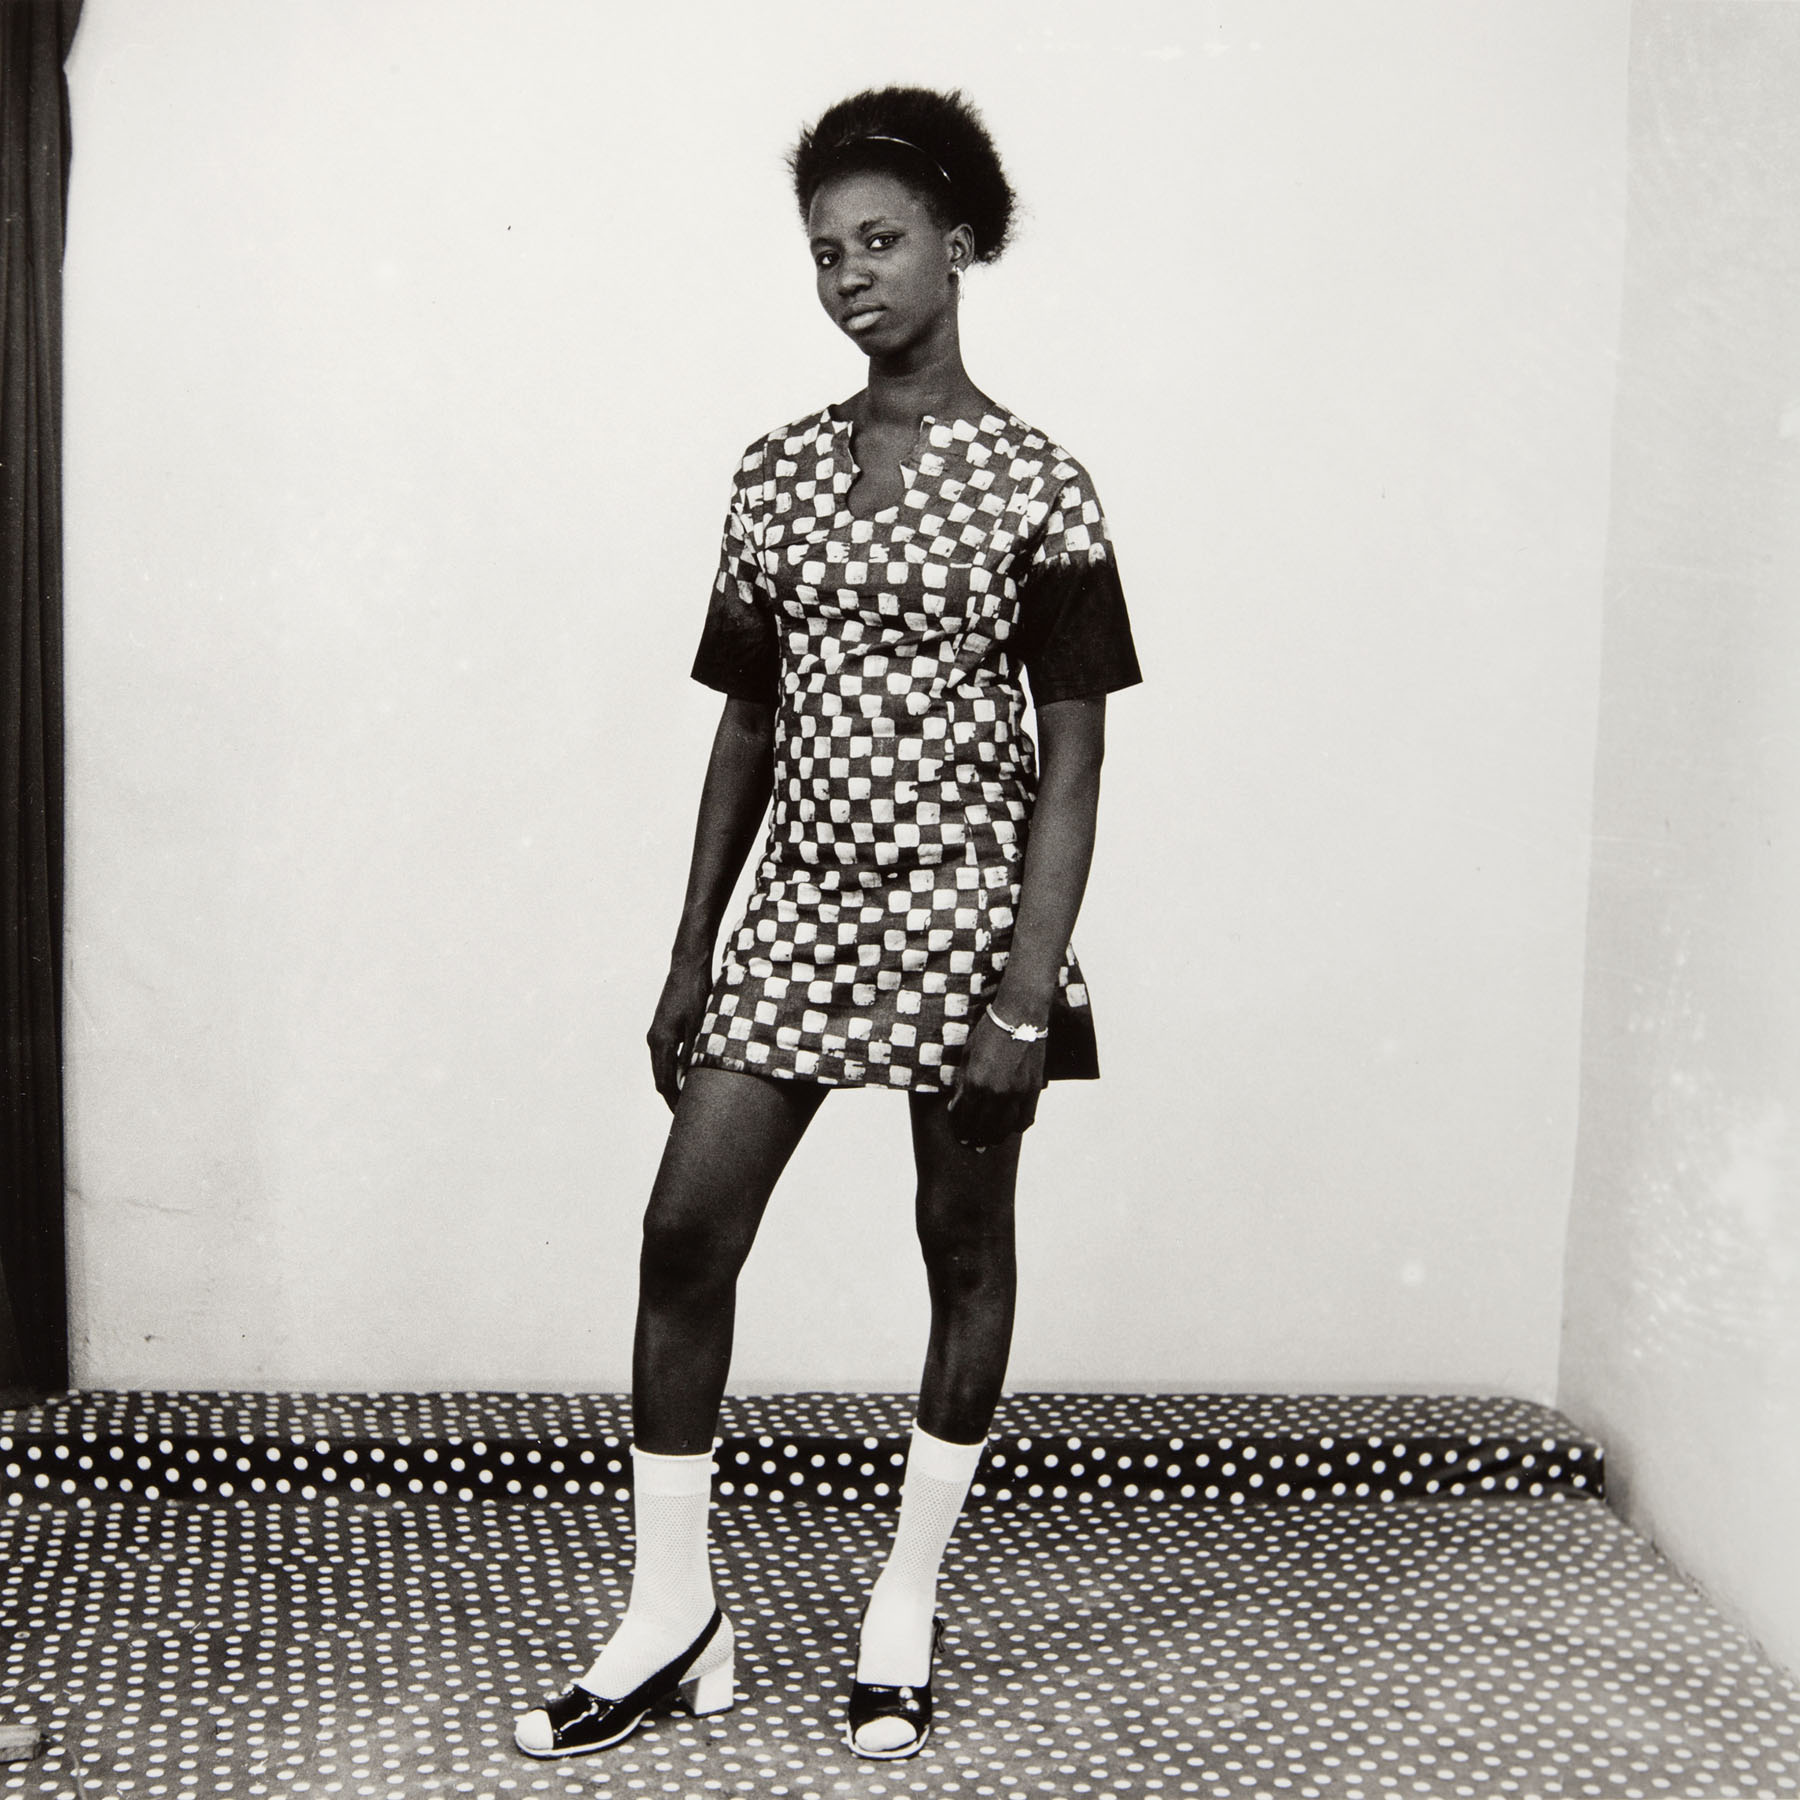 Malick Sidibé, Woman in a Checkered Dress, 1971. Gelatin silver print. © Malick Sidibé / Gwinzegal / diChroma photography